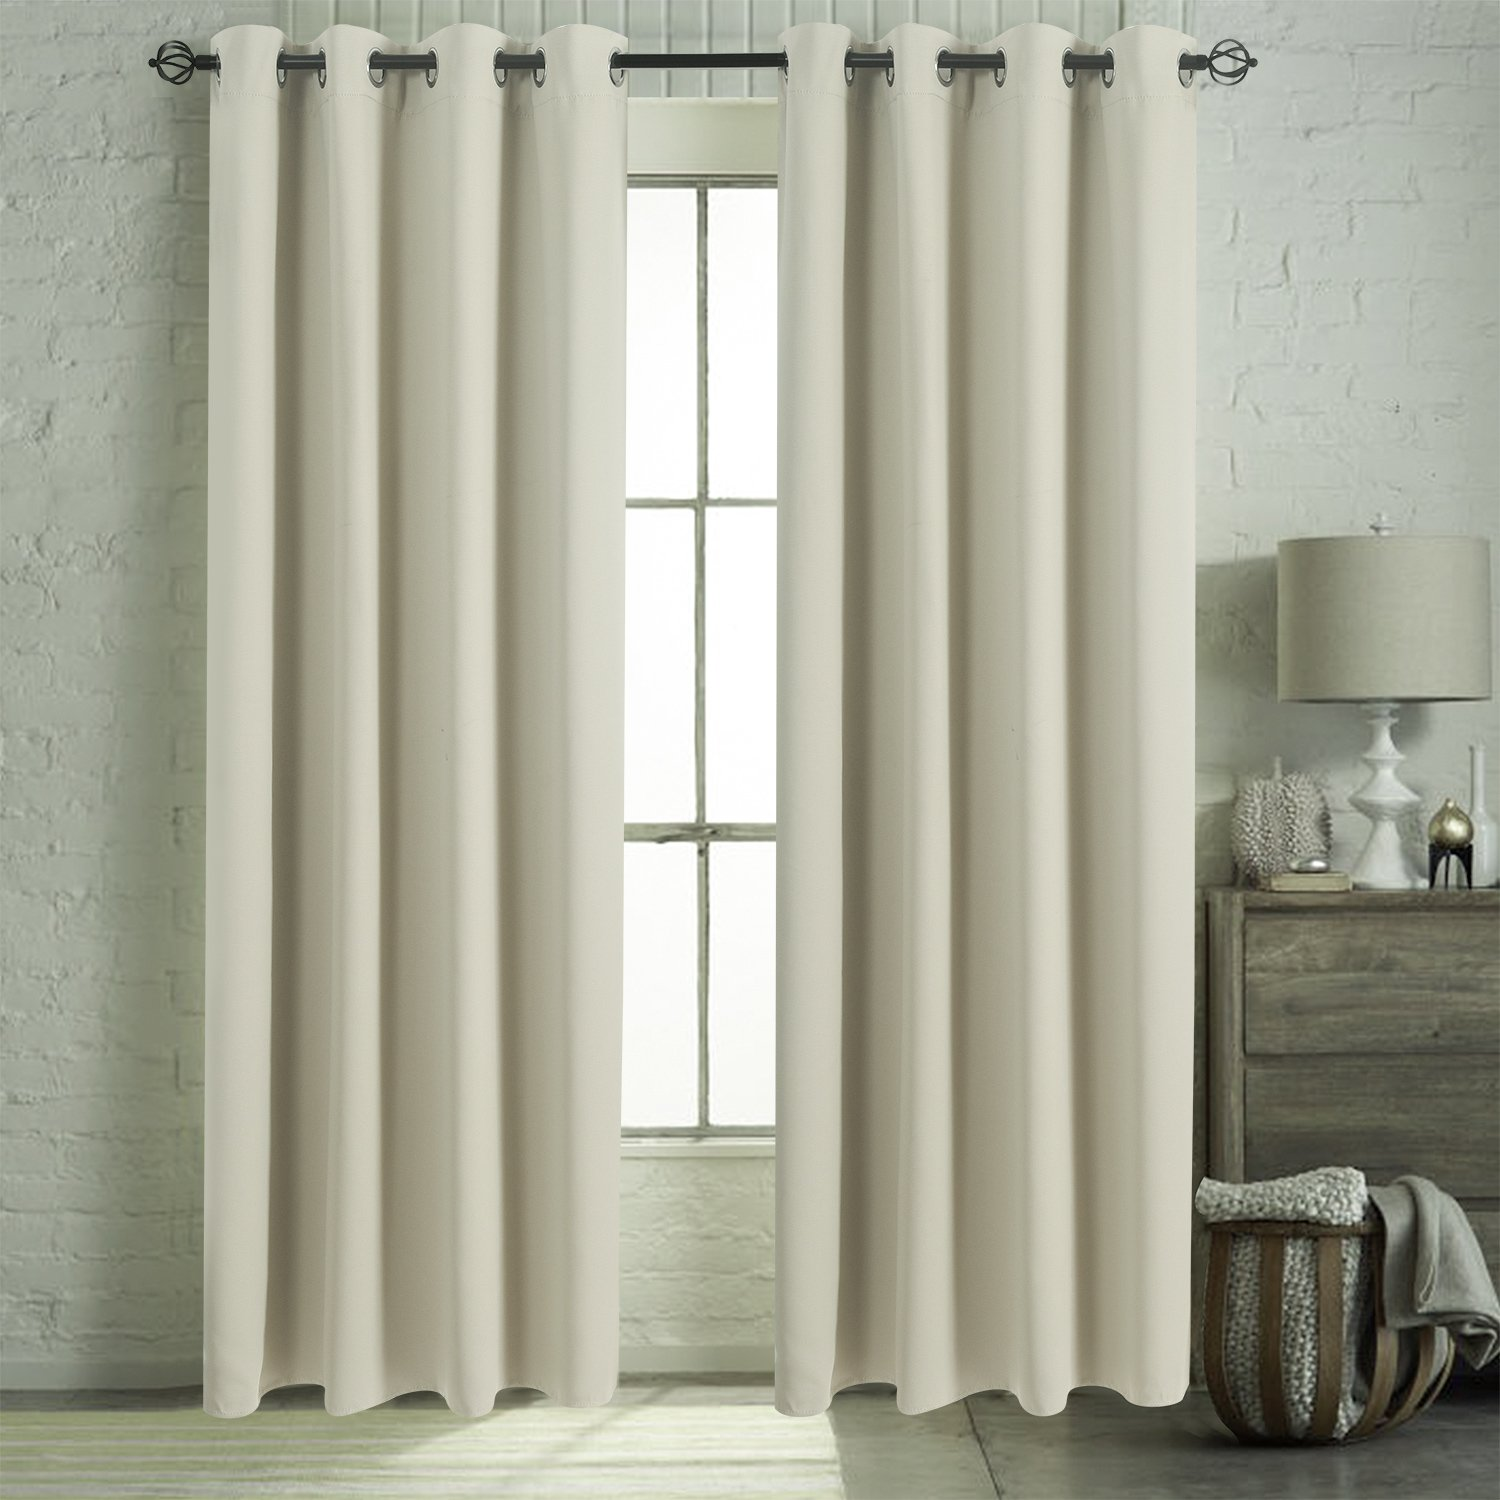 Aquazolax Blackout Curtain Panels for French Door Thermal Insulated Grommet Top Blackout Draperies and Drapes for Bedroom, 2 Panels, W54 x L72 -Inch, Beige